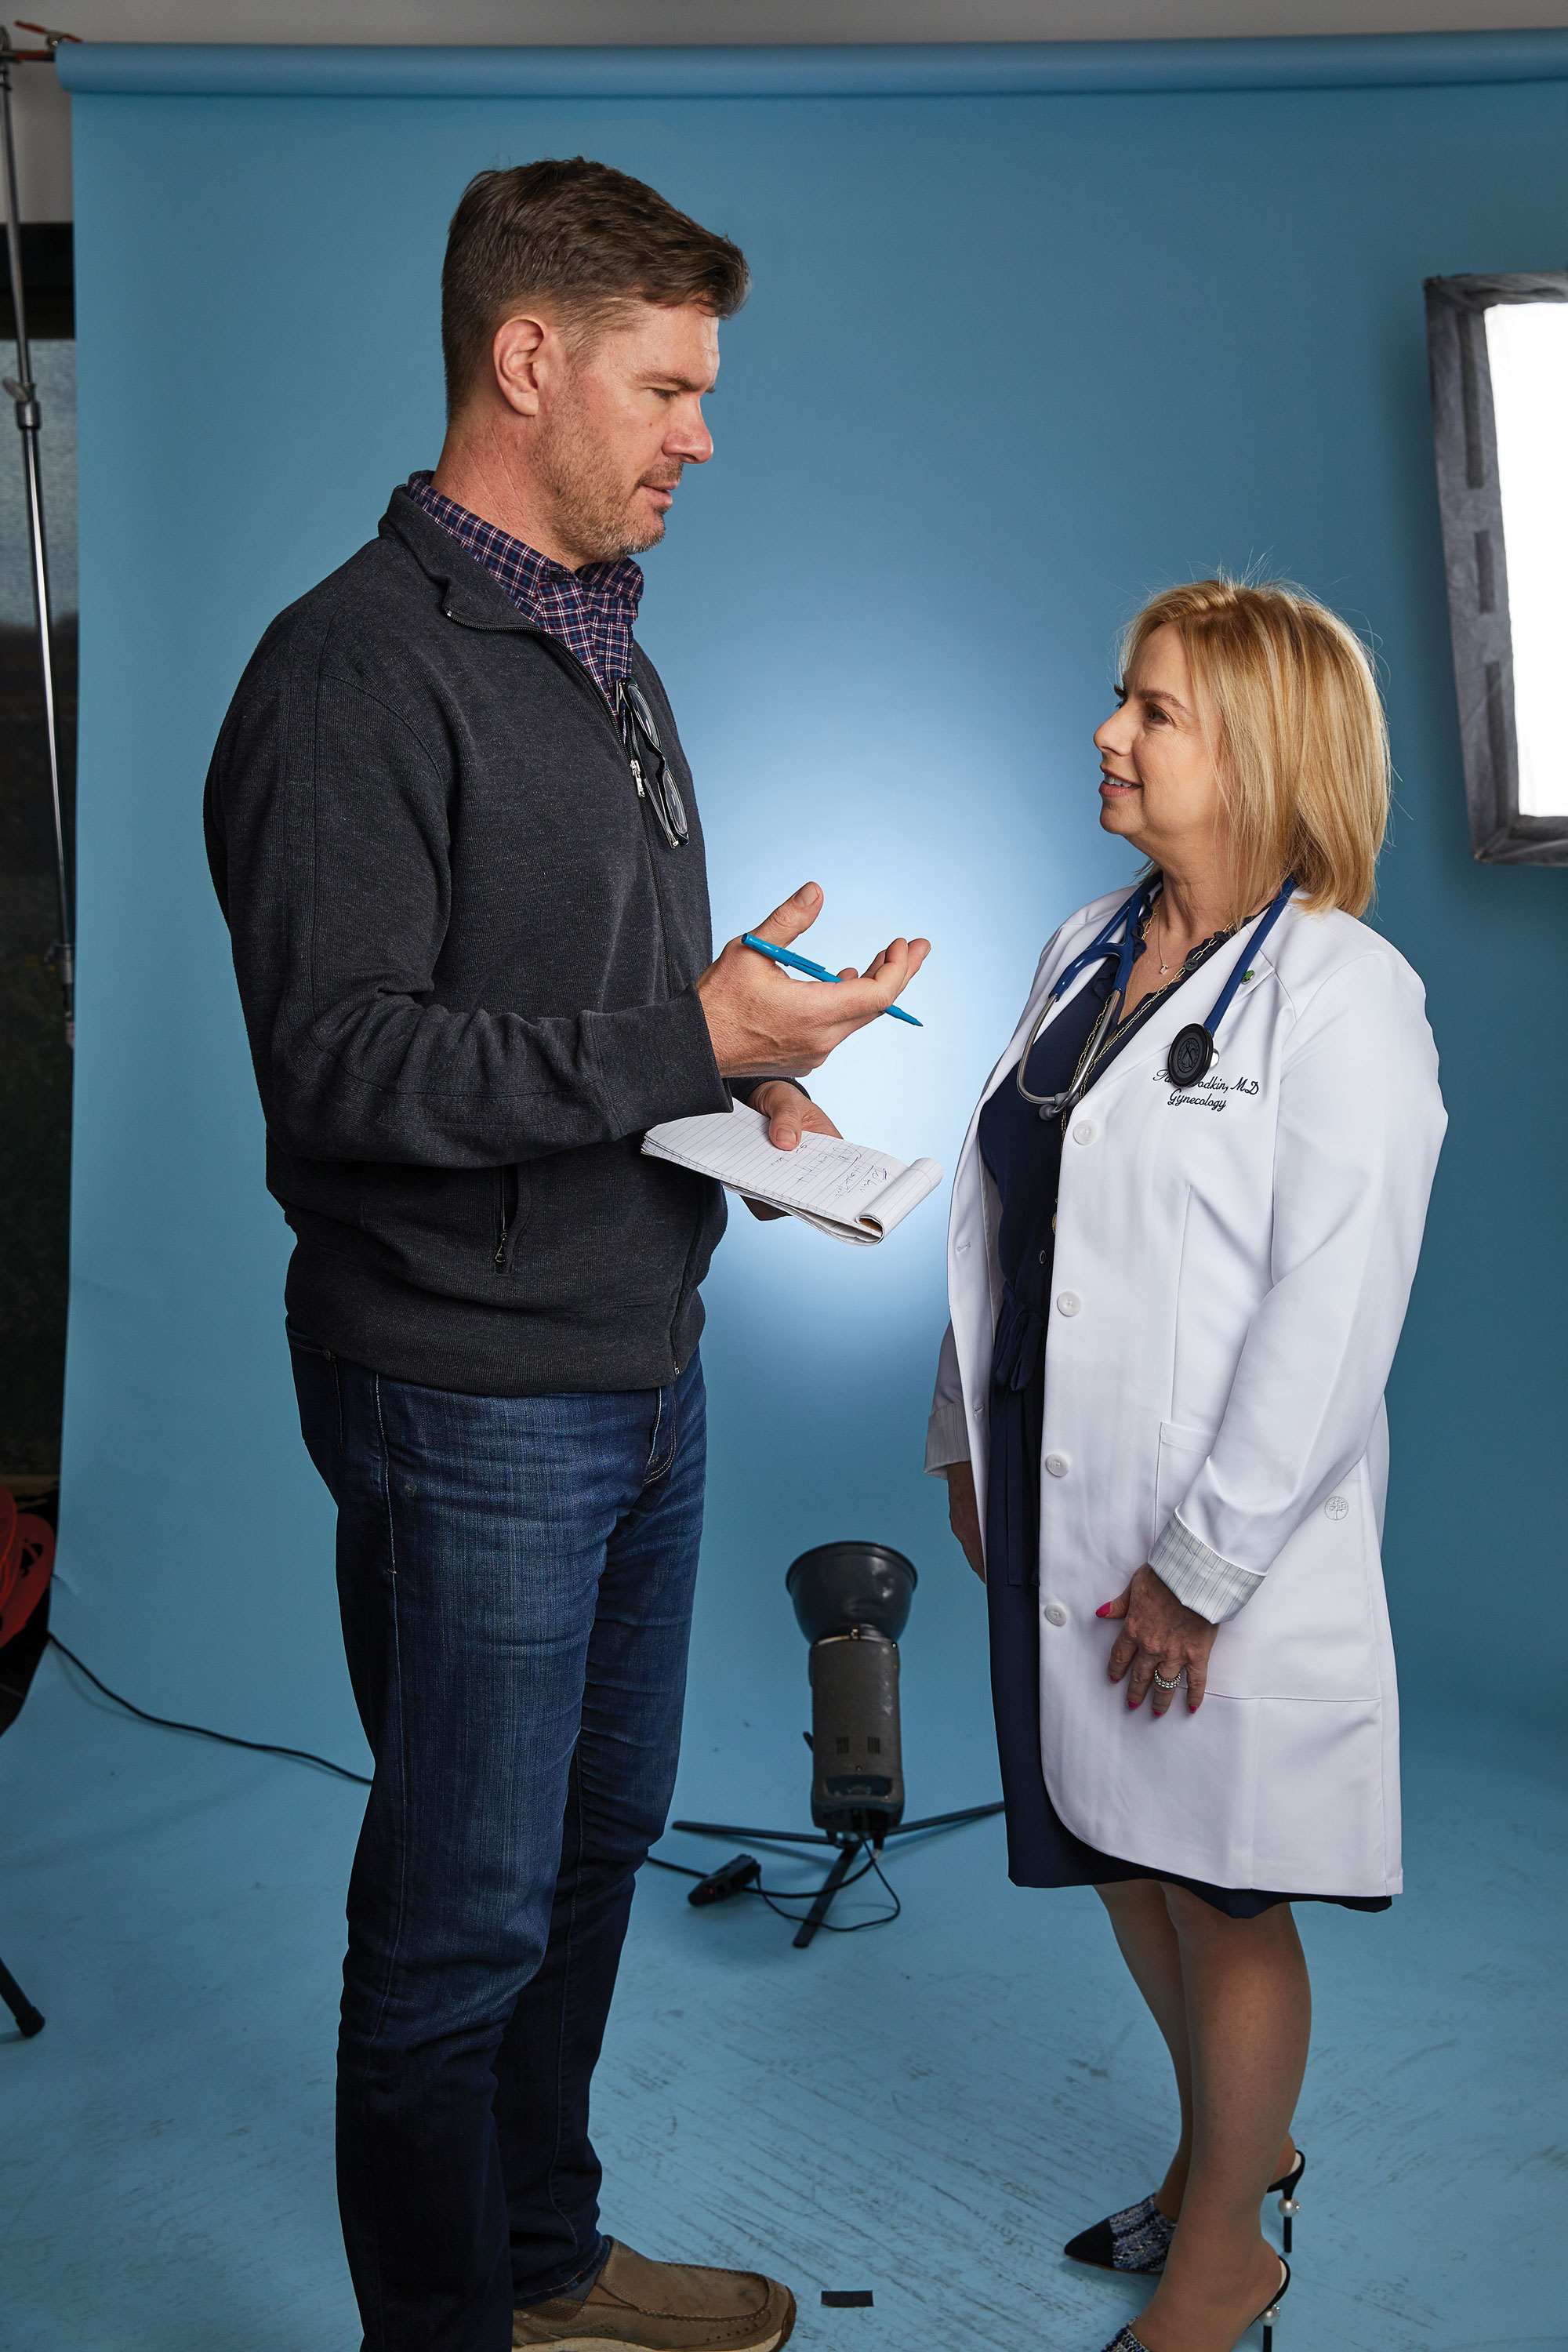 Chatting with OB-GYN Dr. Tara Brodkin; Photo by Steve Craft